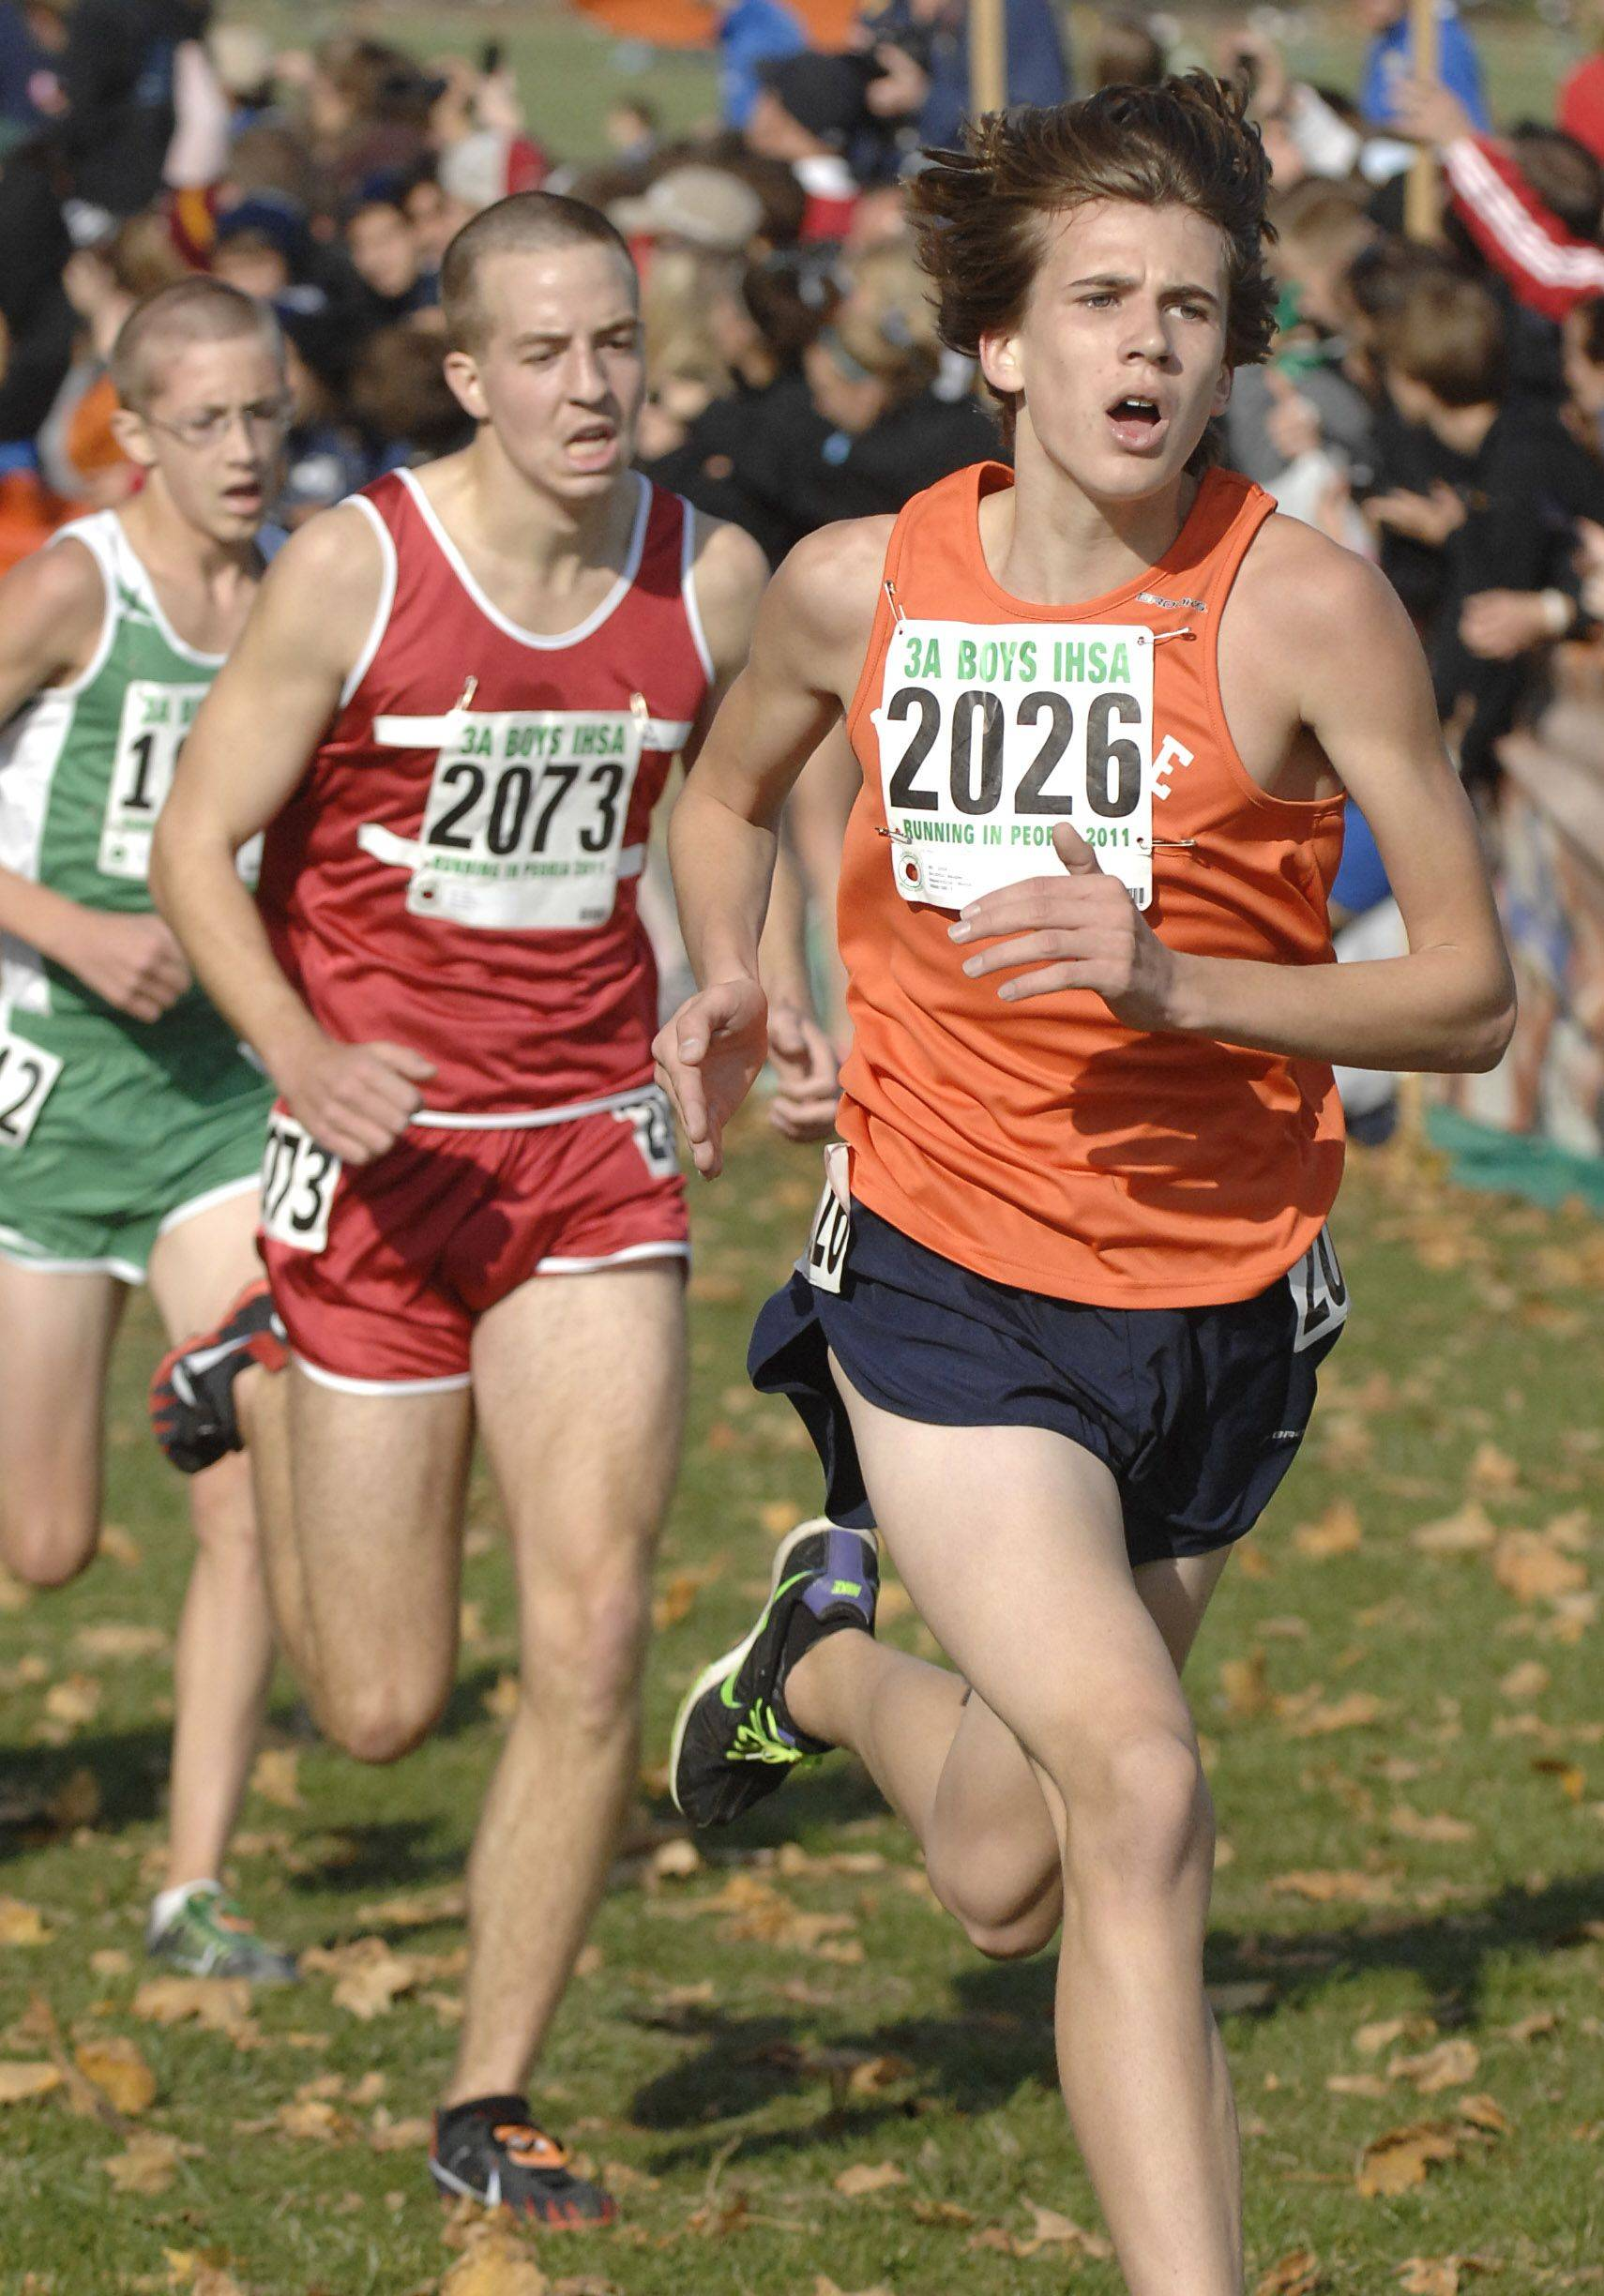 Naperville North's Griffin Haugen comes in 27th place with a time of 15:04 in the 3A state cross country final.